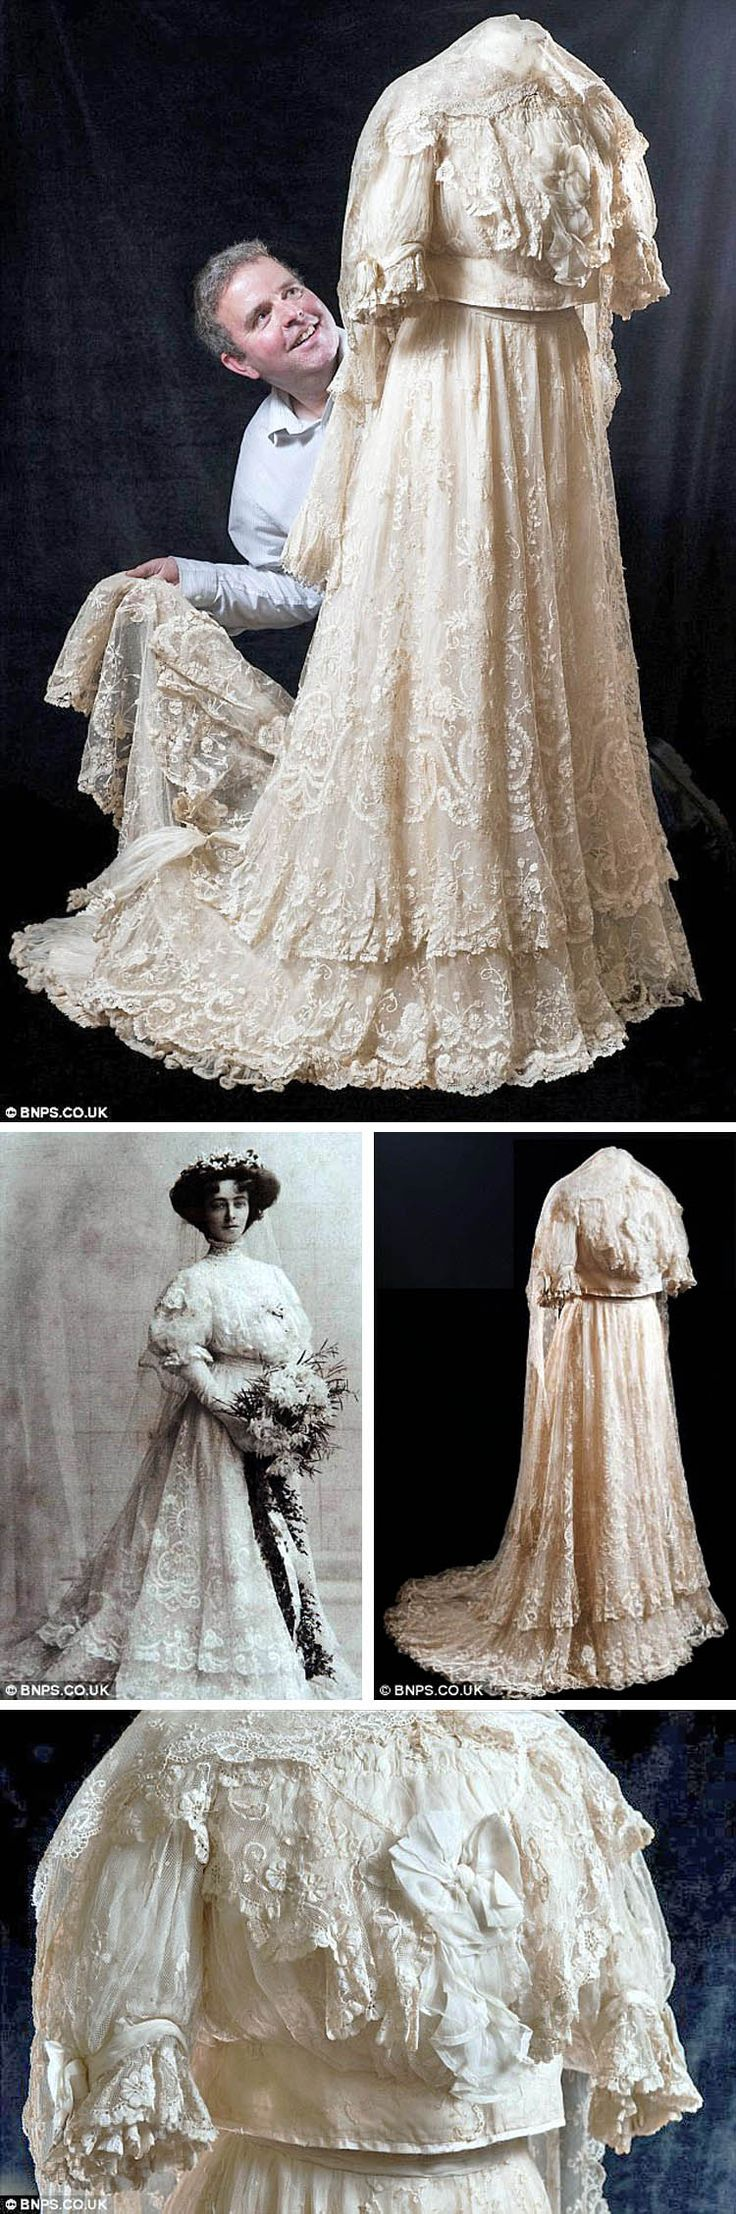 1908 Wedding gown: Silk with Brussels lace and silk bow on bodice. Two-tier skirt with scalloped hems. Lined in satin with a border of tight concertina pleats. Train. (Shirtwaist would never have been worn untucked like this.) Worn by Ethel Dalziel for her marriage to H. Roland Cooper. Ethel's granddaughter tried to donate it to a museum, but none wanted it! It was auctioned off by Duke's in 2012. Via Daily Mail.